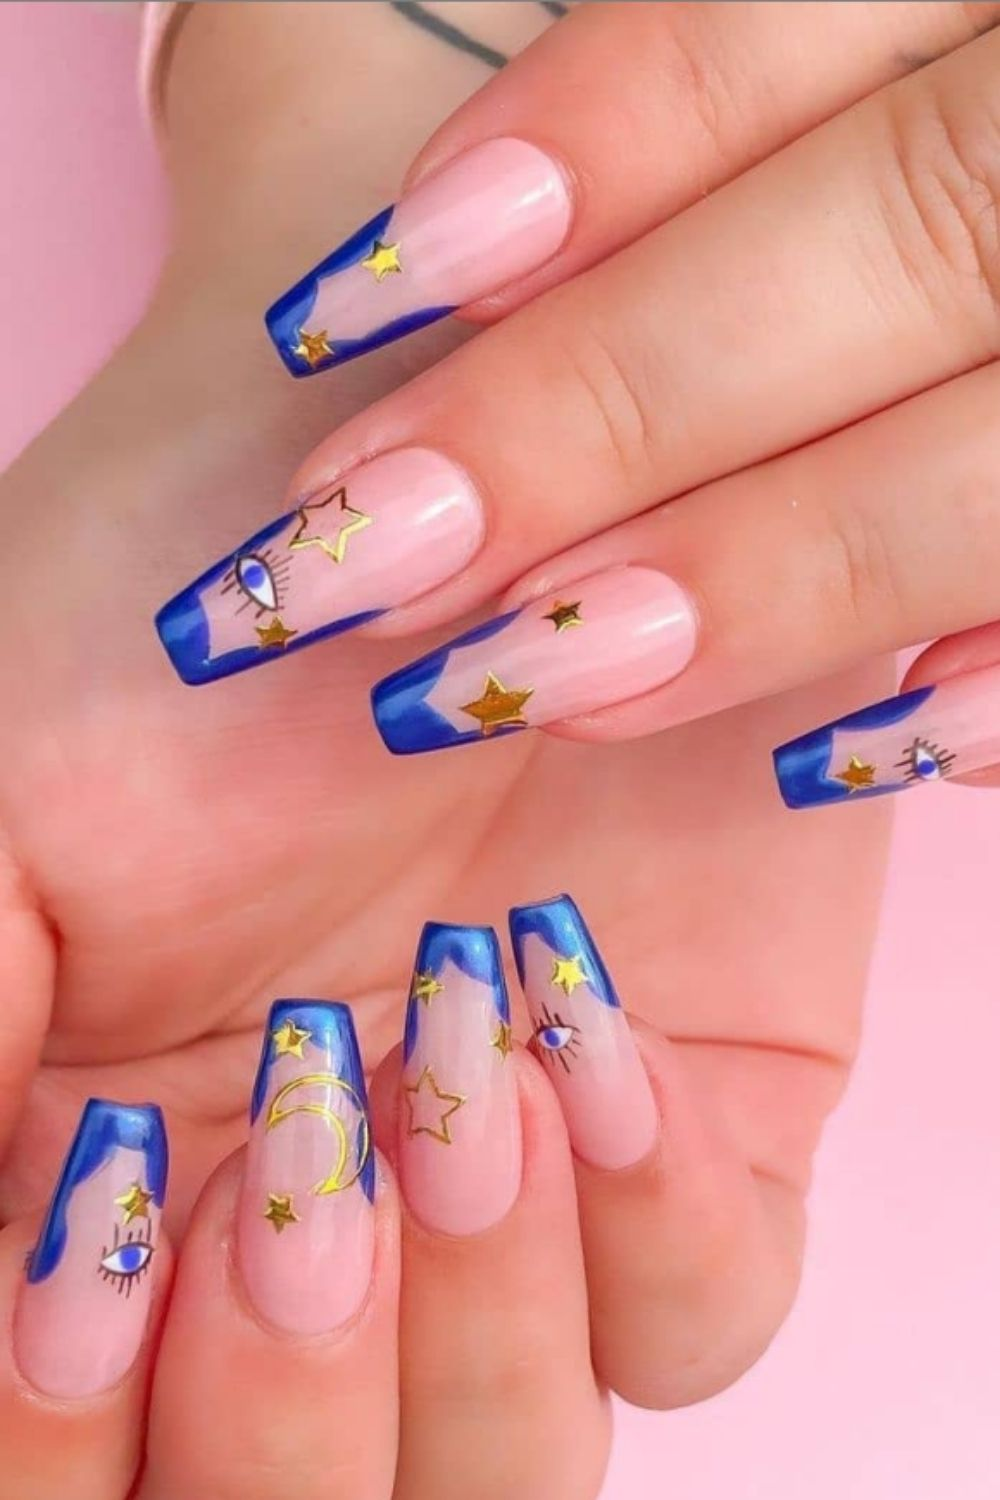 51 Crazy-Gorgeous Nail Ideas for Coffin-Shaped Nail Designs